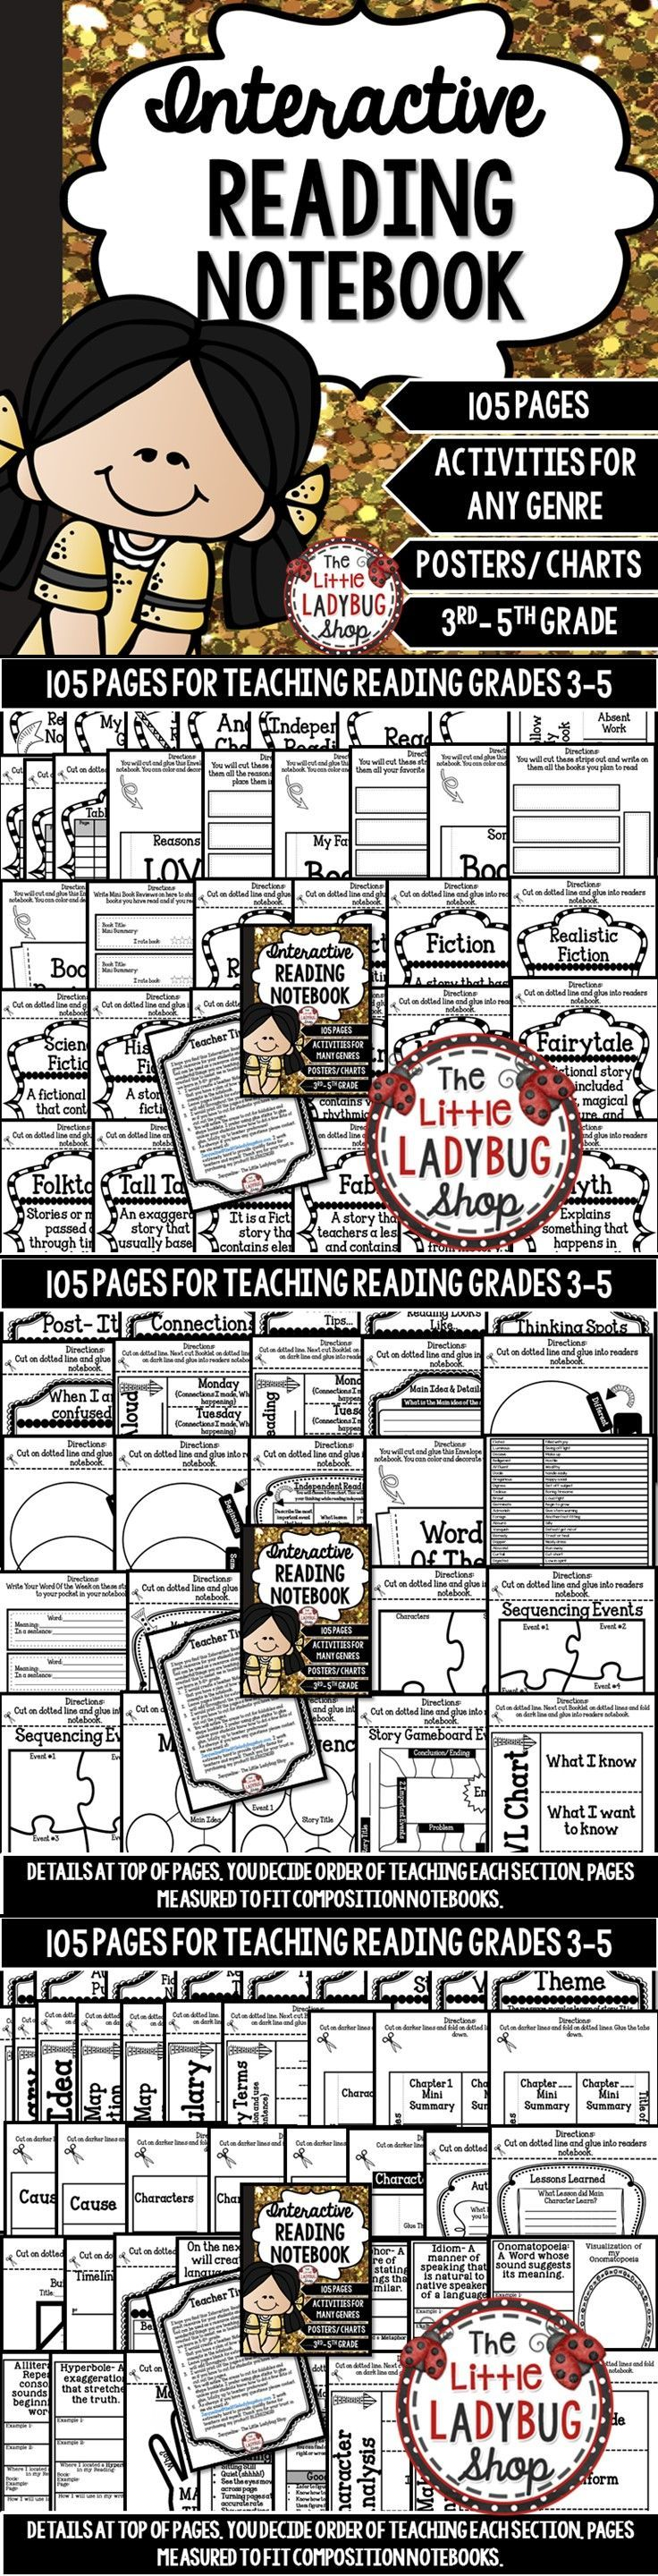 Reading Interactive Notebook | Reading Interactive Notebook  Reading Interactive Notebooks are an EXCITING way to teach Reading throughout the school year! This notebook is VERY detailed and includes components to a Balanced Literacy Classroom Setting